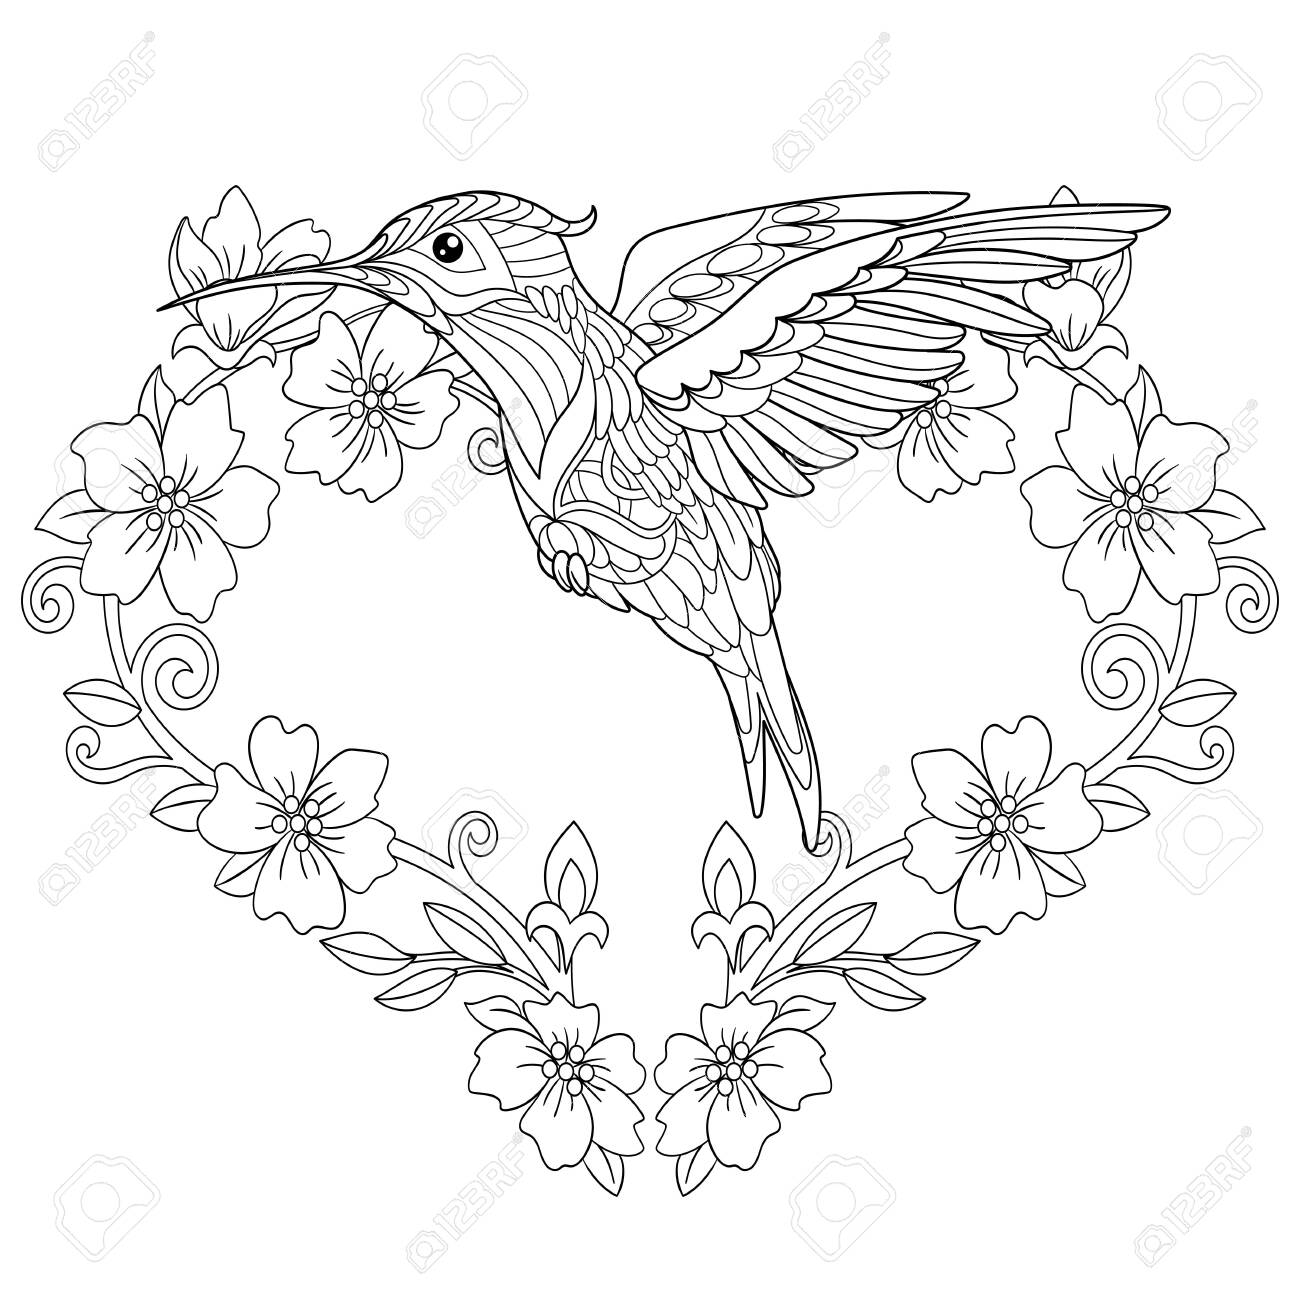 Coloring Page. Coloring Book. Colouring picture with hummingbird..